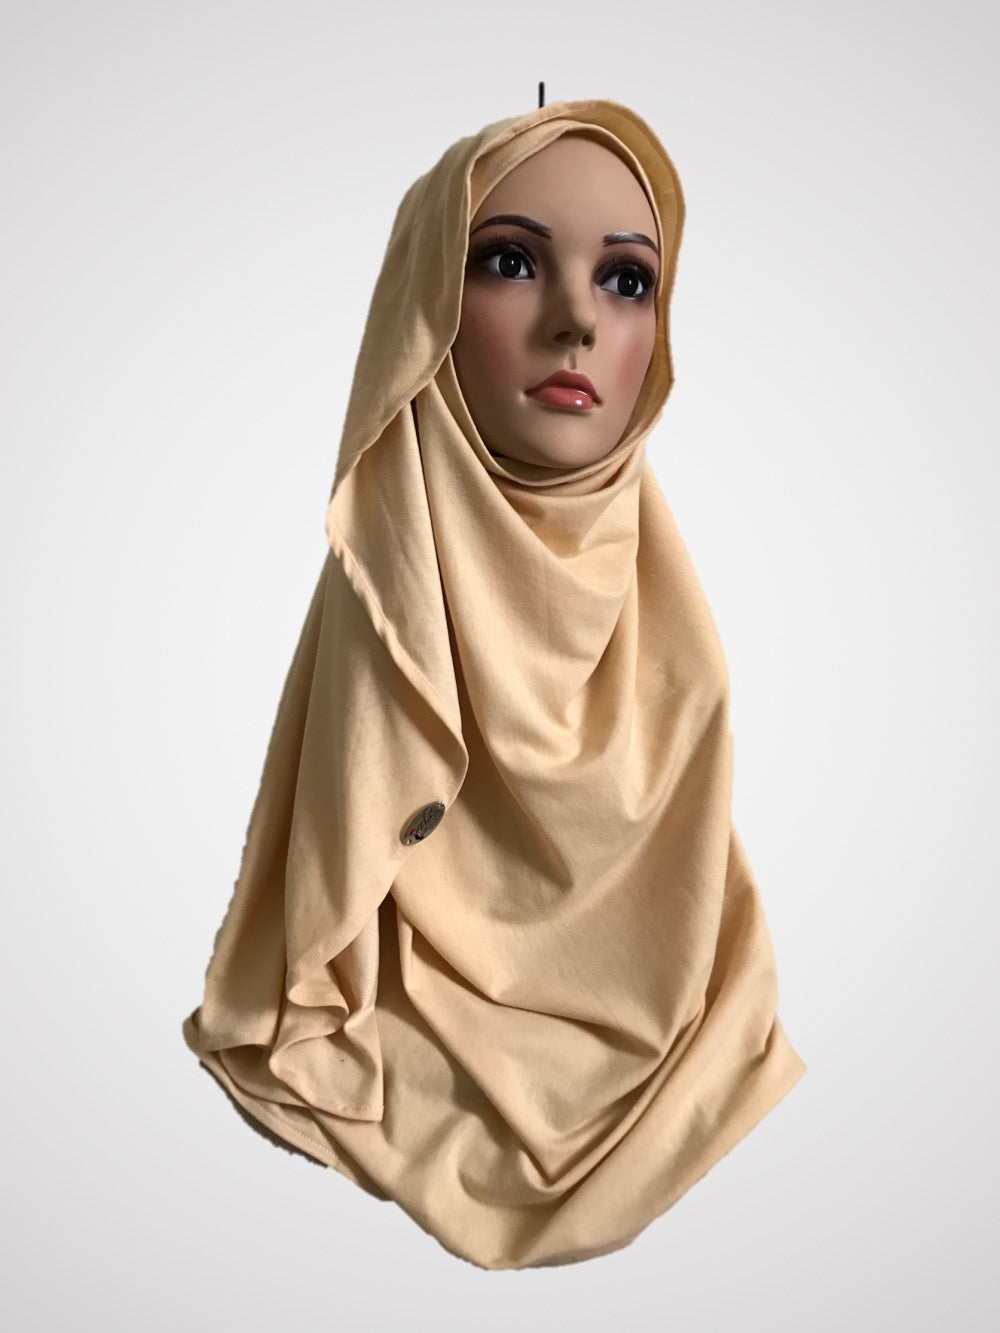 Sand dollar creme stretched (COT) instant hijab CF